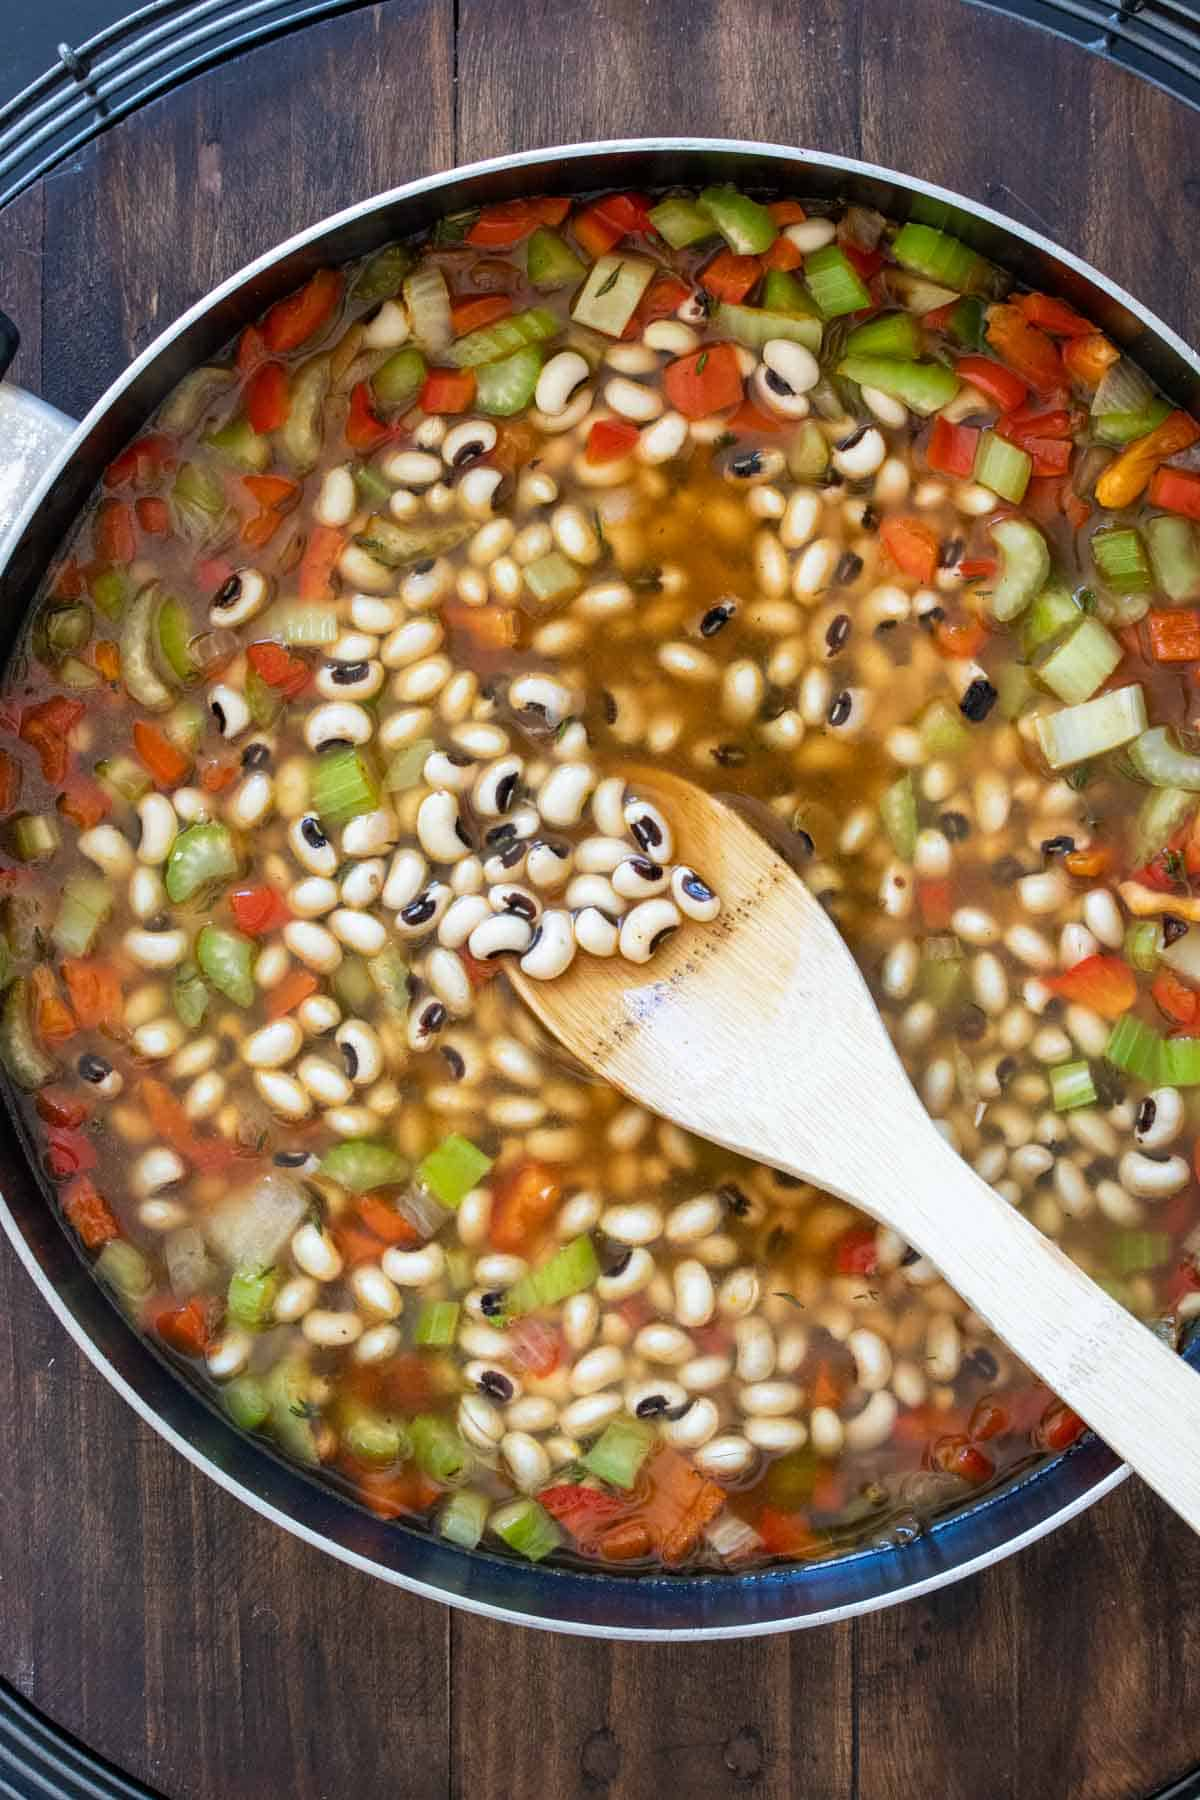 Pan filled with black eyed peas in broth with chopped veggies